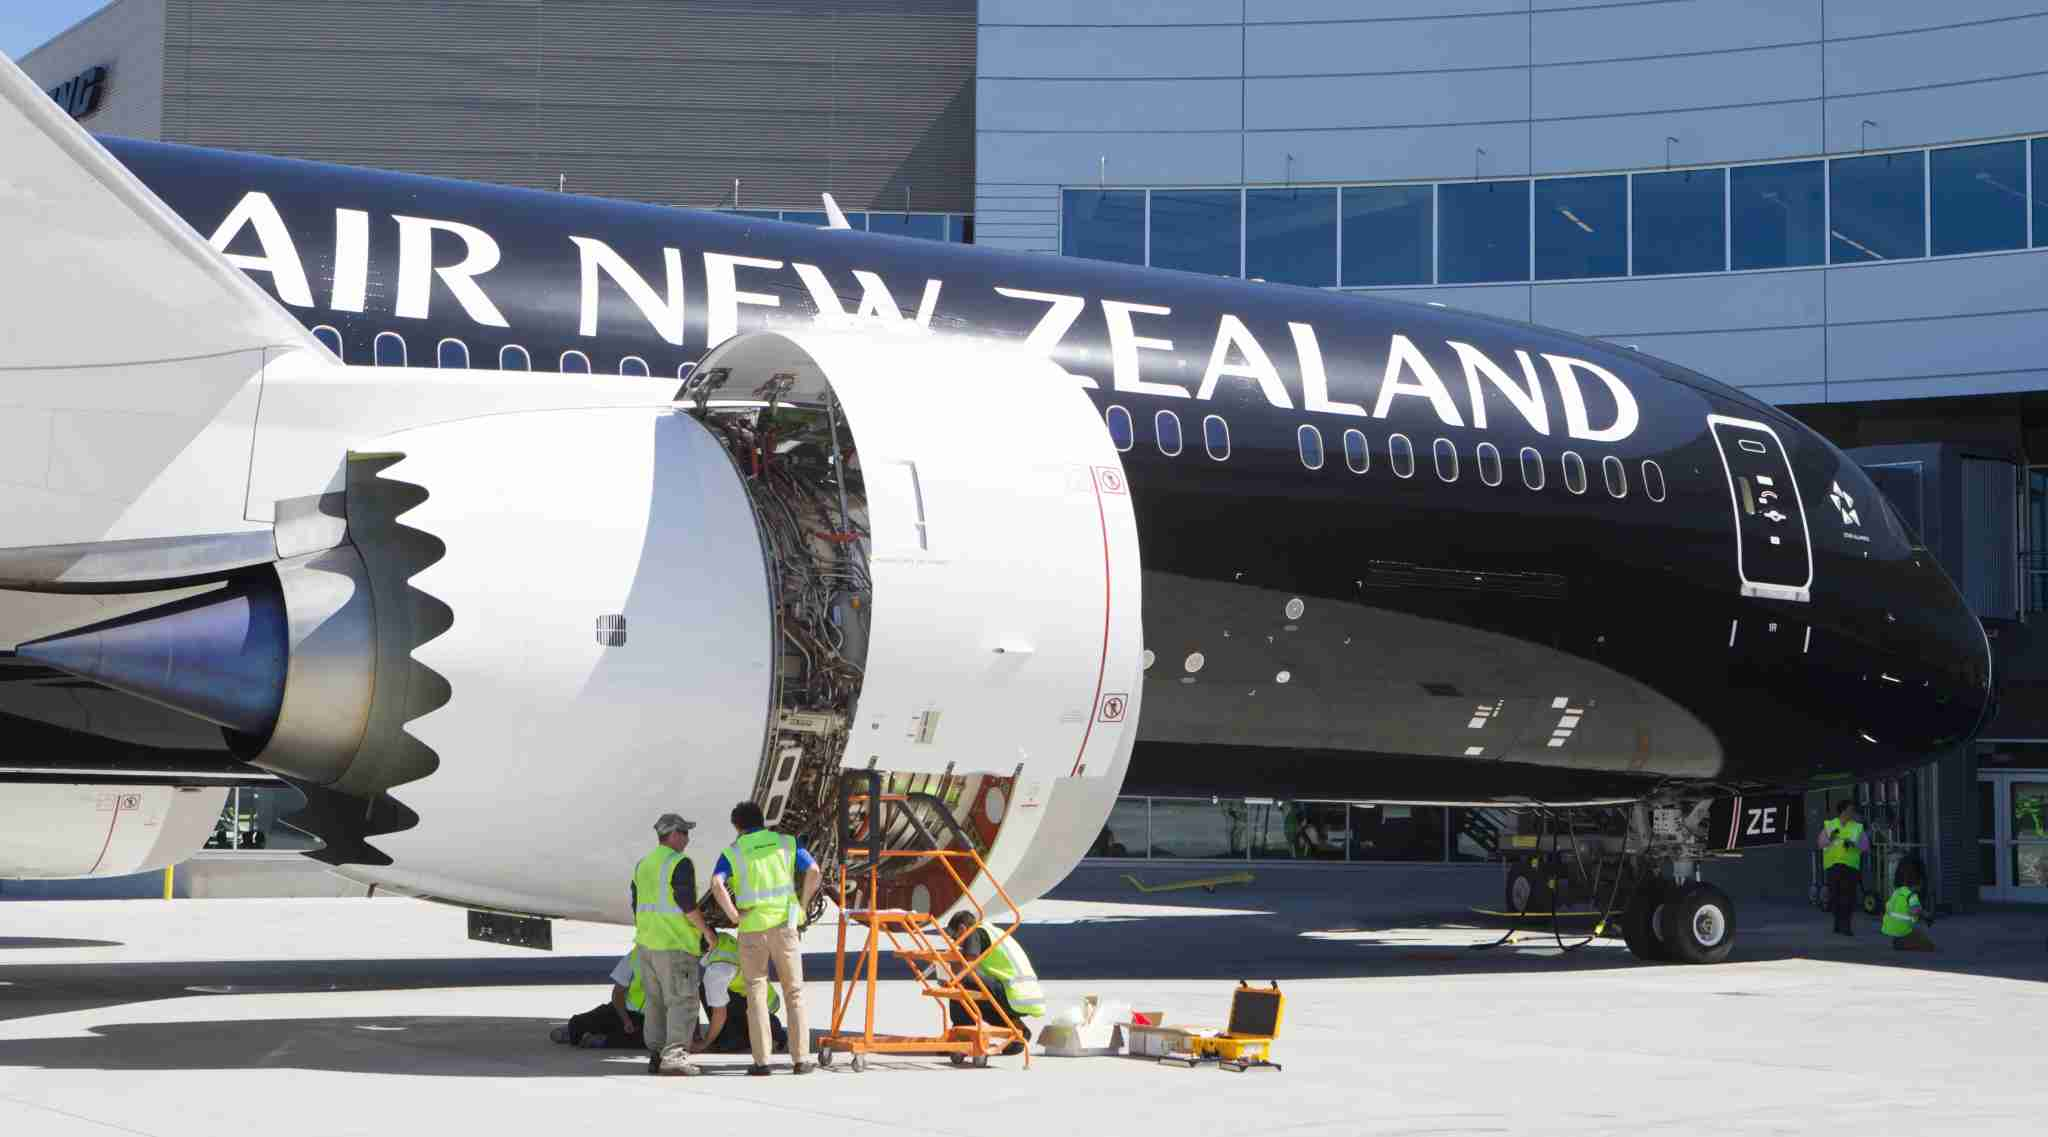 Crews work on the engine of an Air New Zealand Boeing 787-9 Dreamliner, July 9, 2014 in Everett, Washington. (Photo by Stephen Brashear / Getty Images)